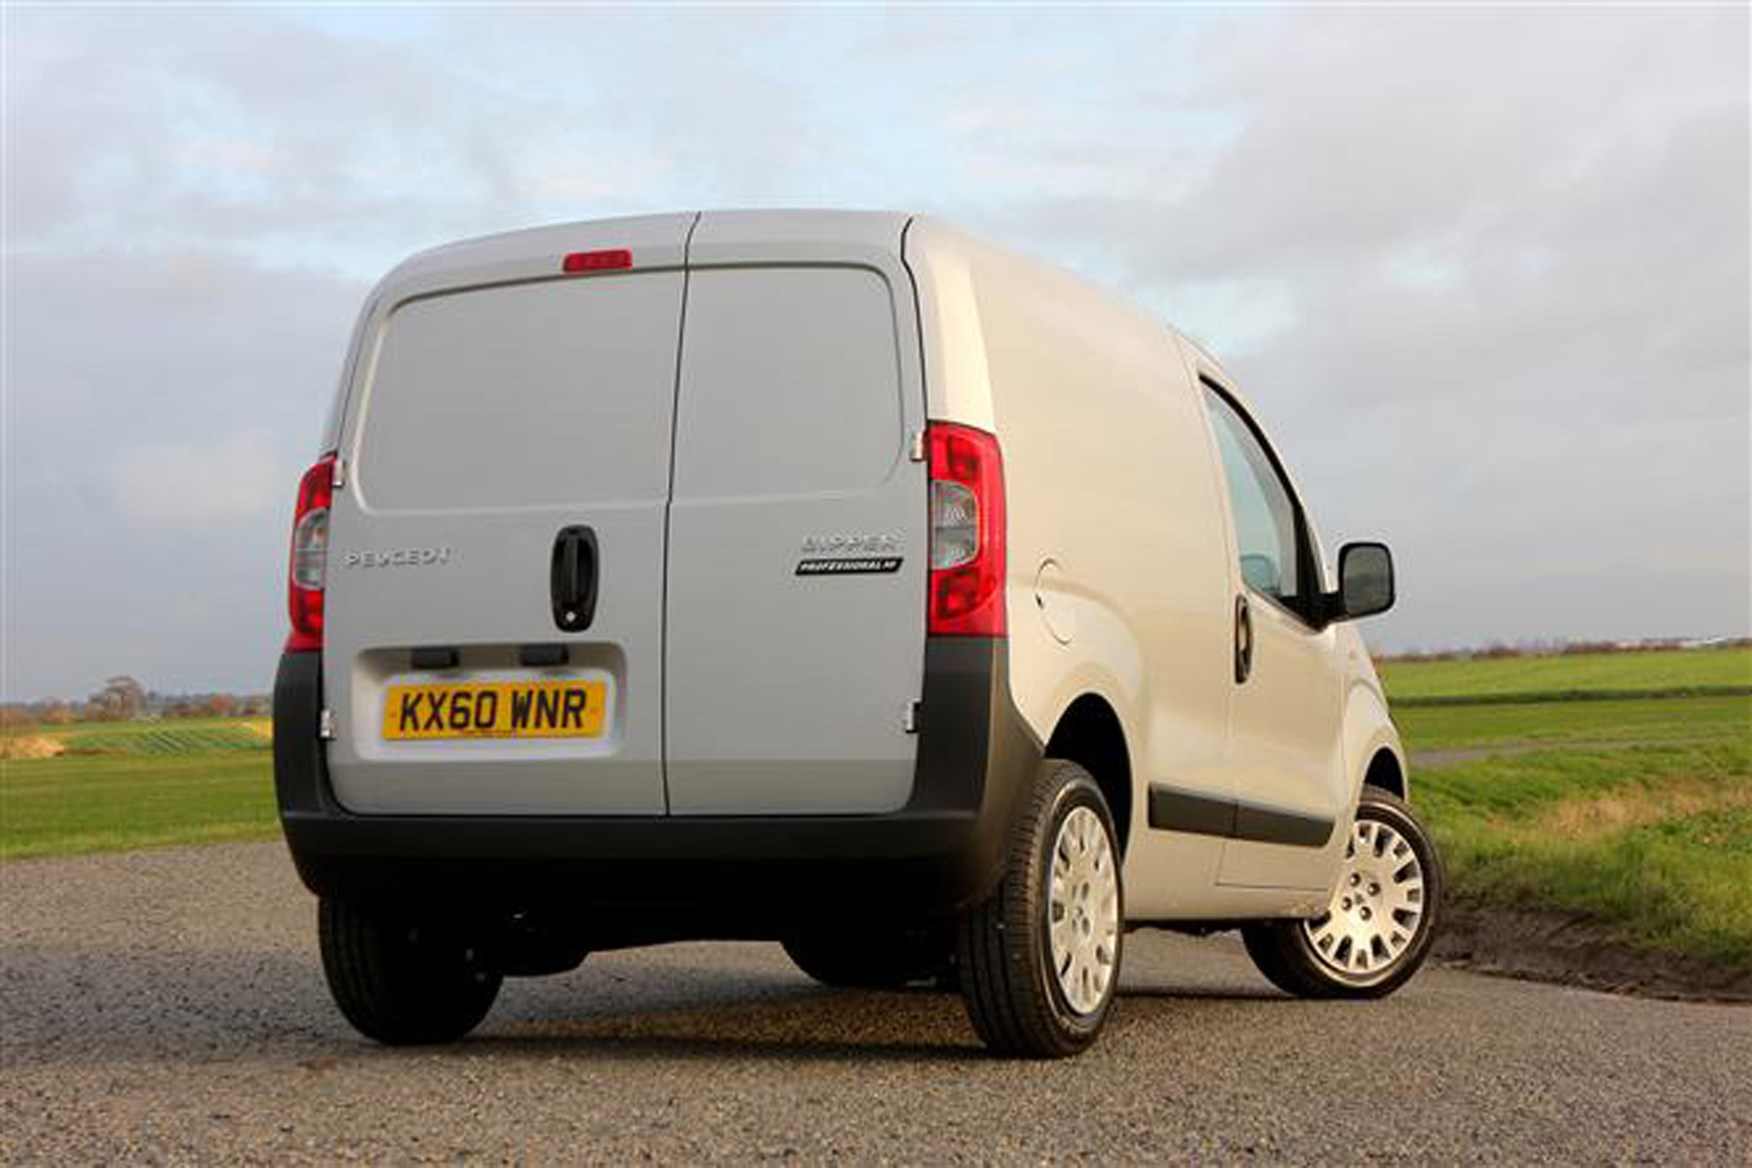 Peugeot Bipper review on Parkers Vans - rear exterior